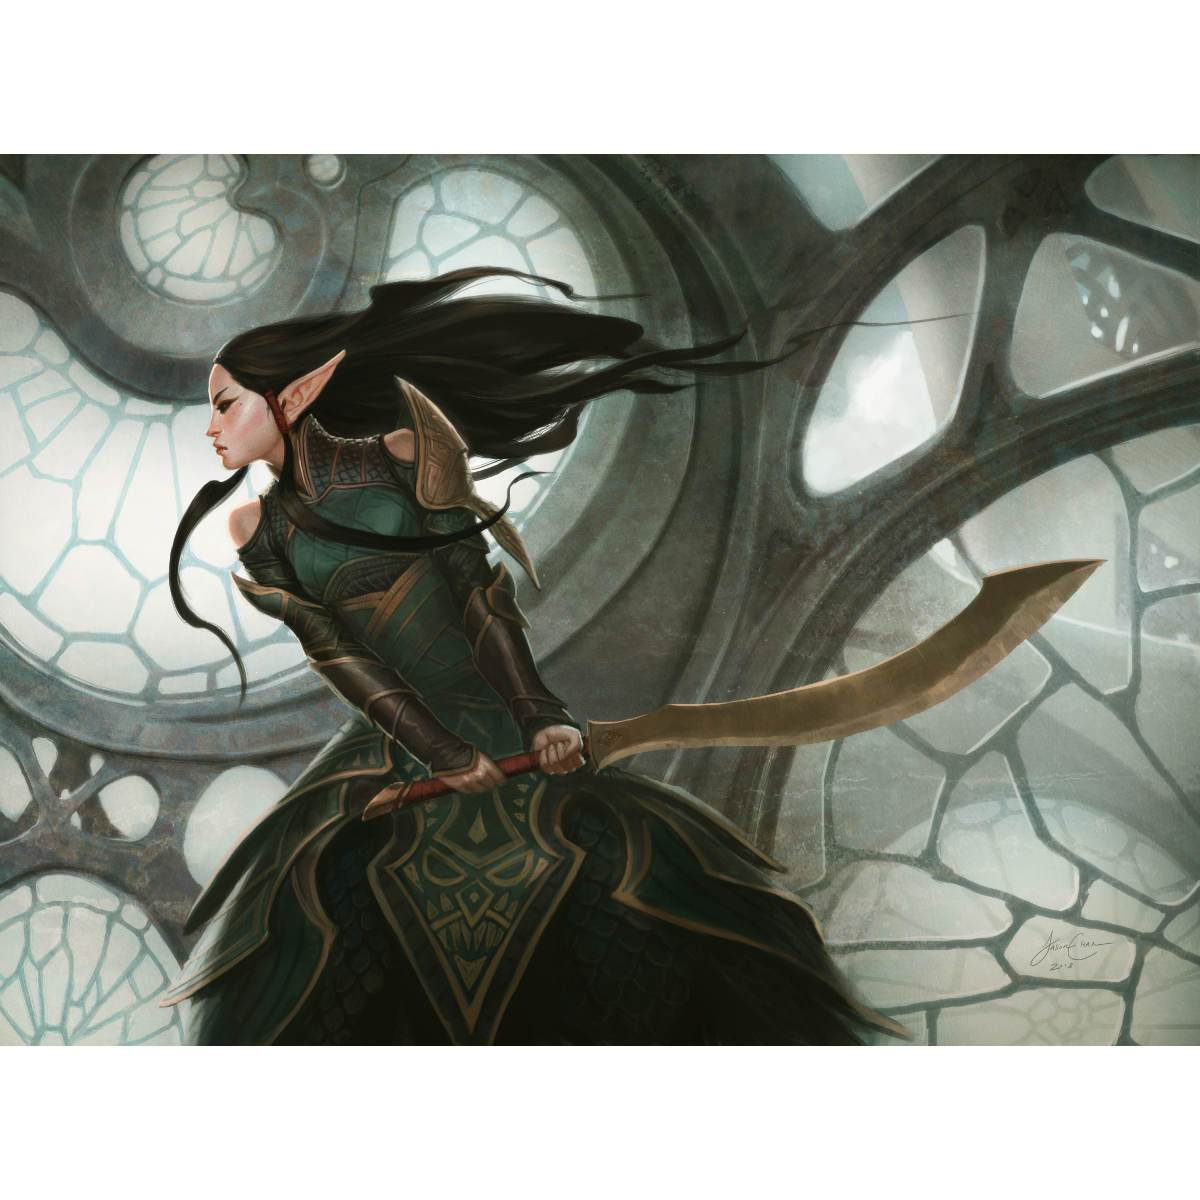 Naya Hushblade Print - Print - Original Magic Art - Accessories for Magic the Gathering and other card games